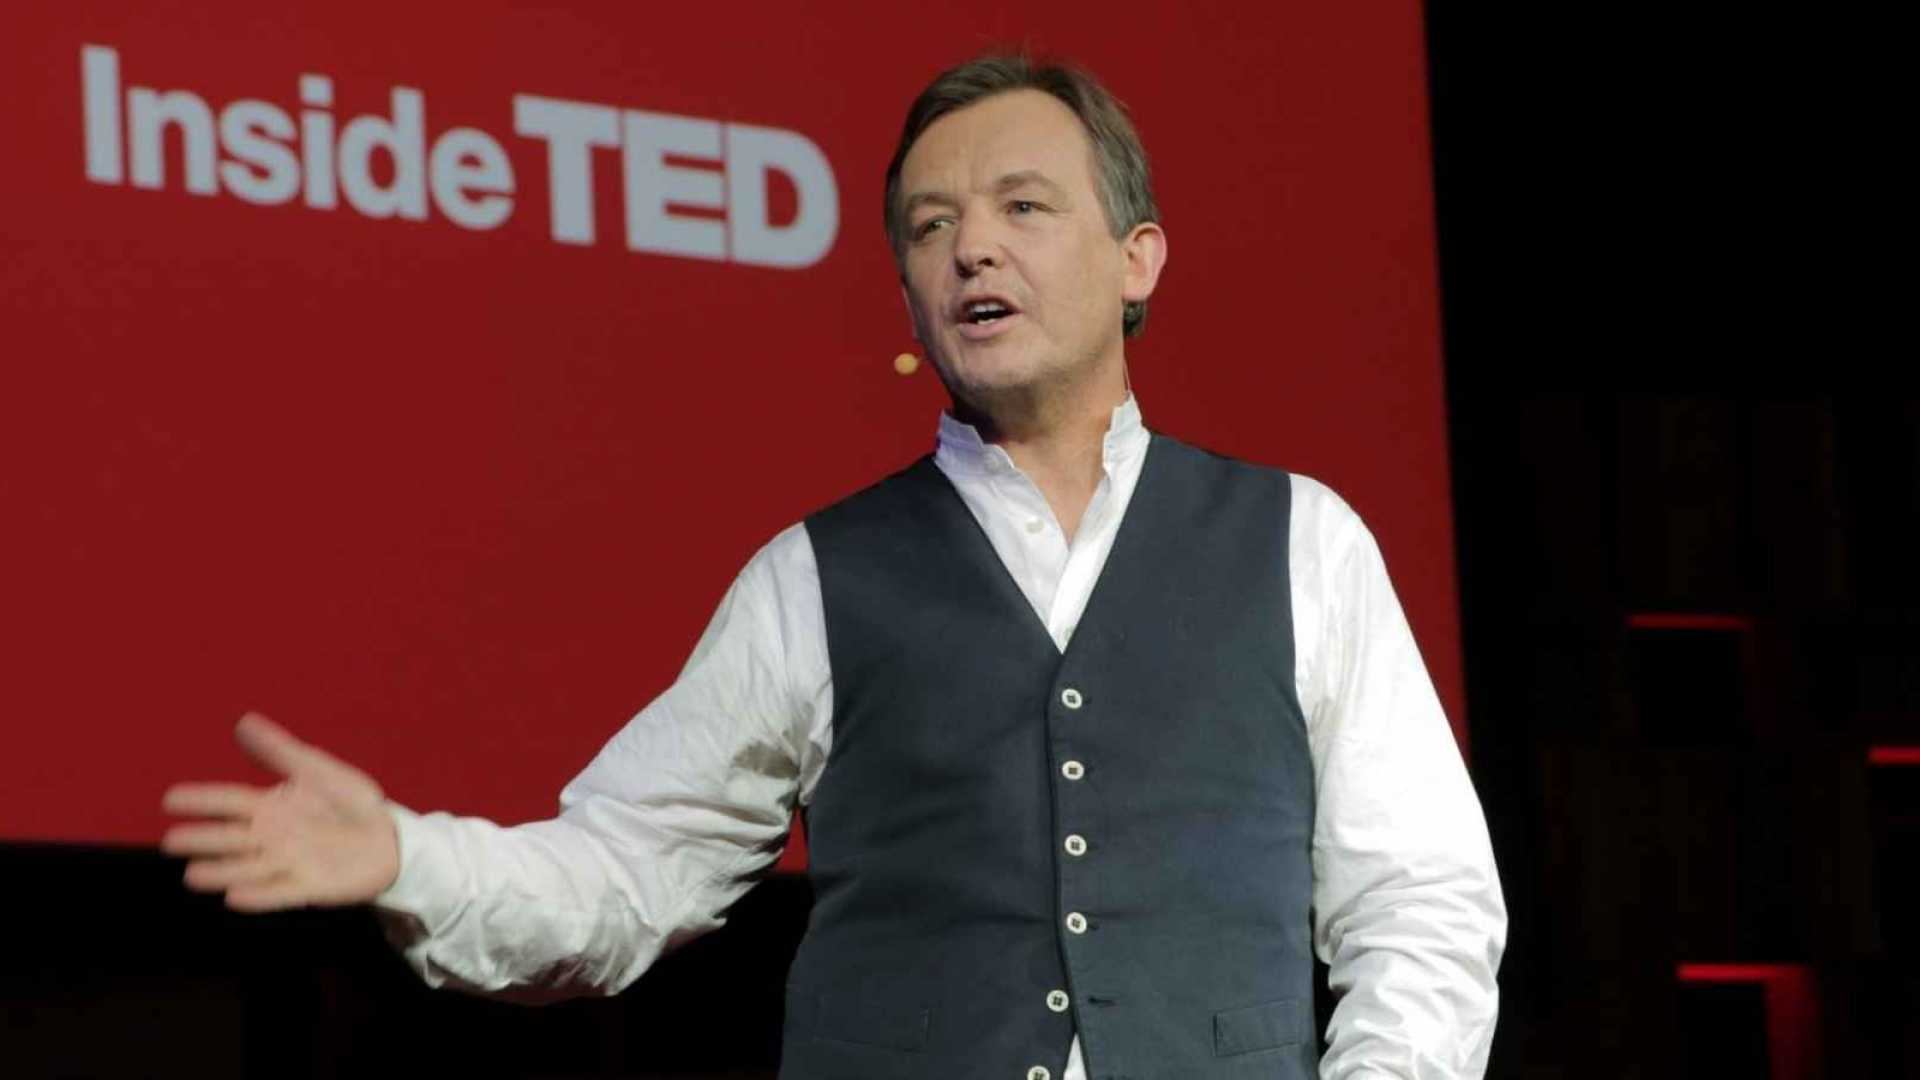 8 Life-Changing Lessons You Can Learn in 3 Minutes From Ultra-Short TED Talks